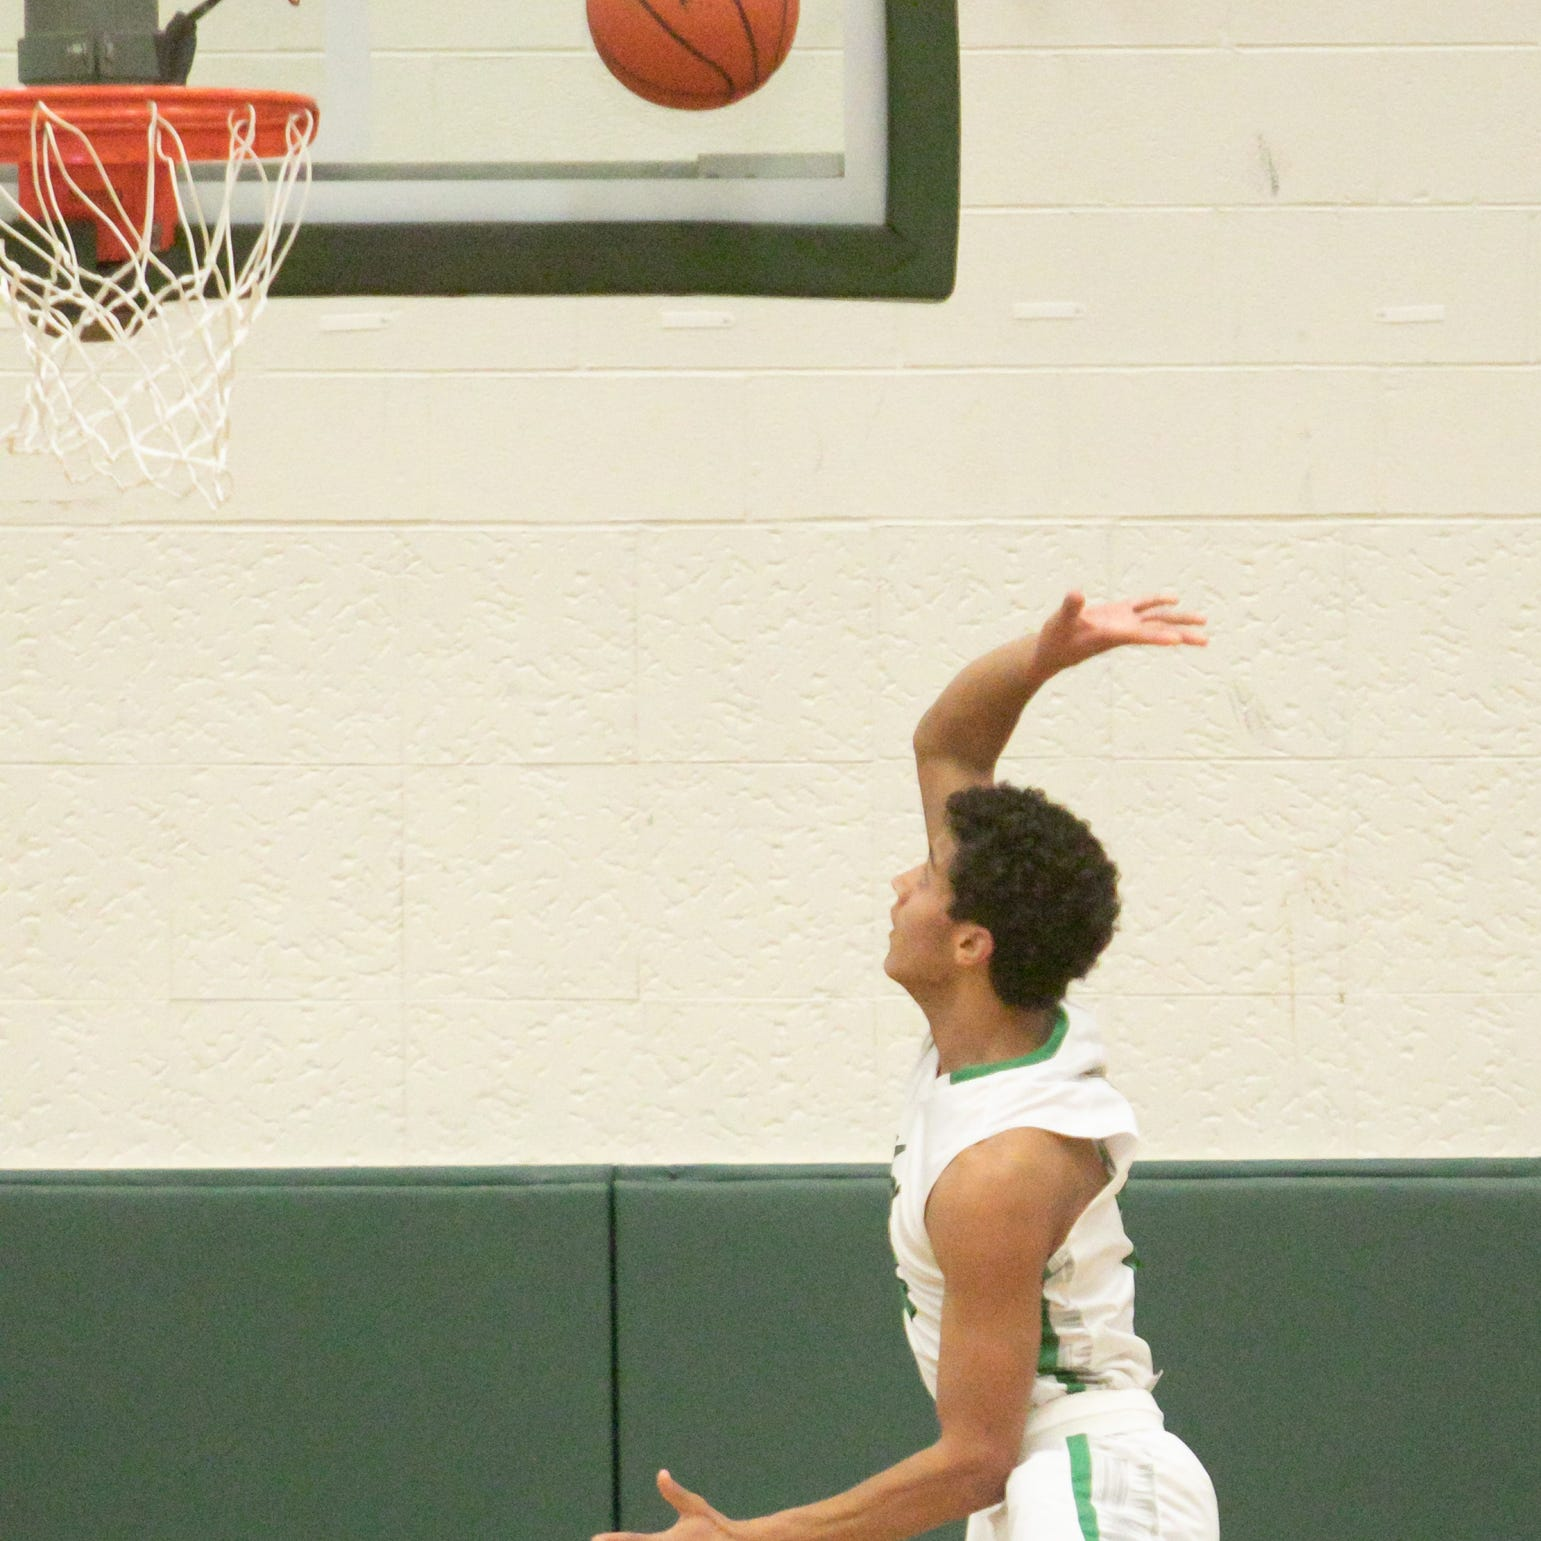 Technical foul sends Novi star to bench in boys basketball loss to Howell